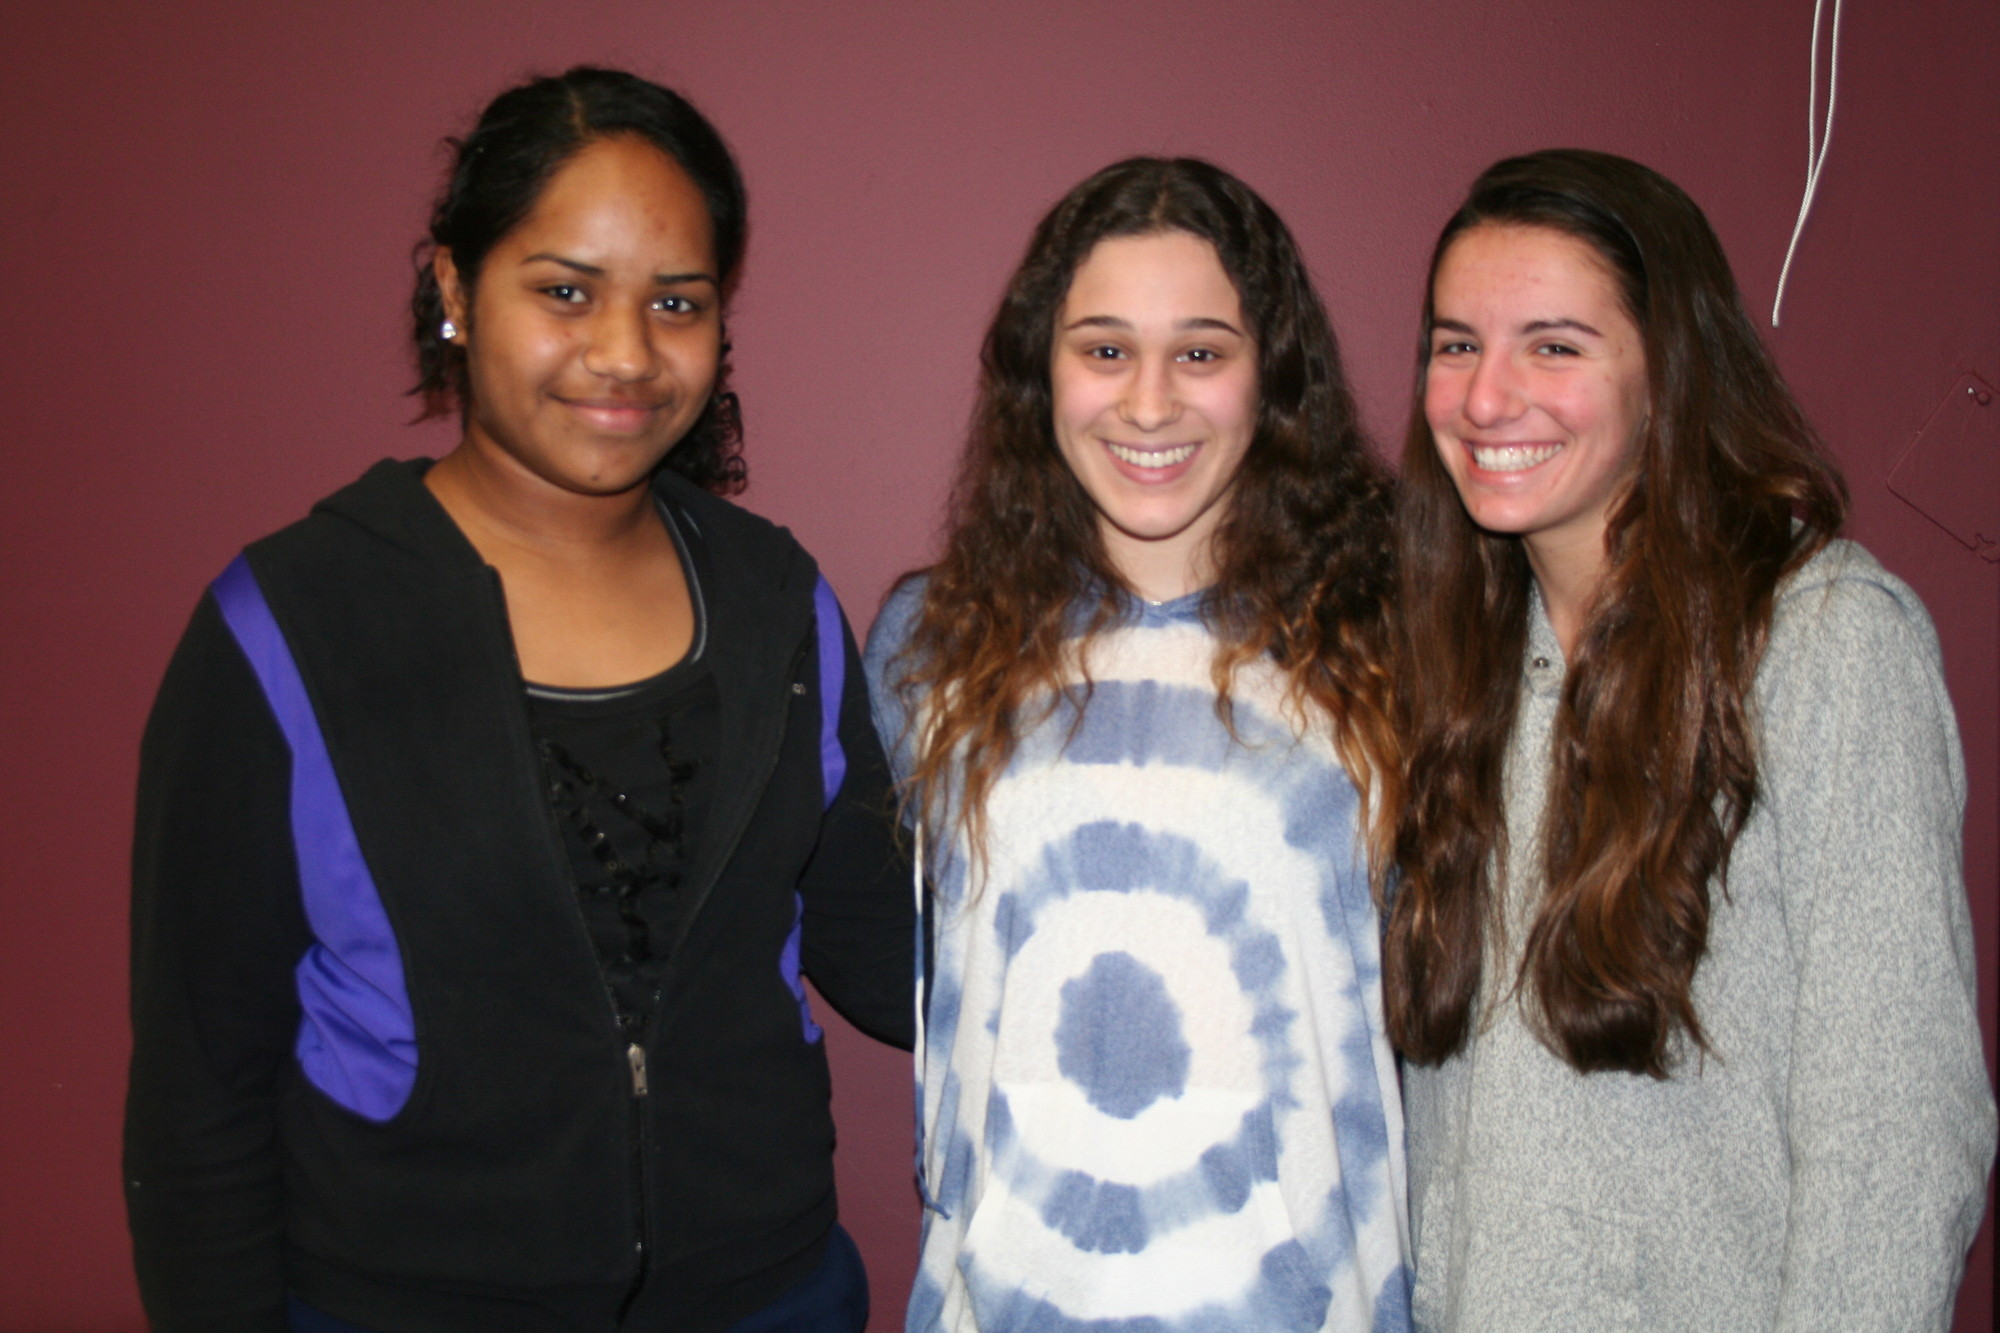 Hewlett High School students are involved in helping to revive the community's Memorial Day parade, slated for May 27. From left were, high school students Talei Tarakinikini, Jaime Kasner and Sydney Rosenblum.